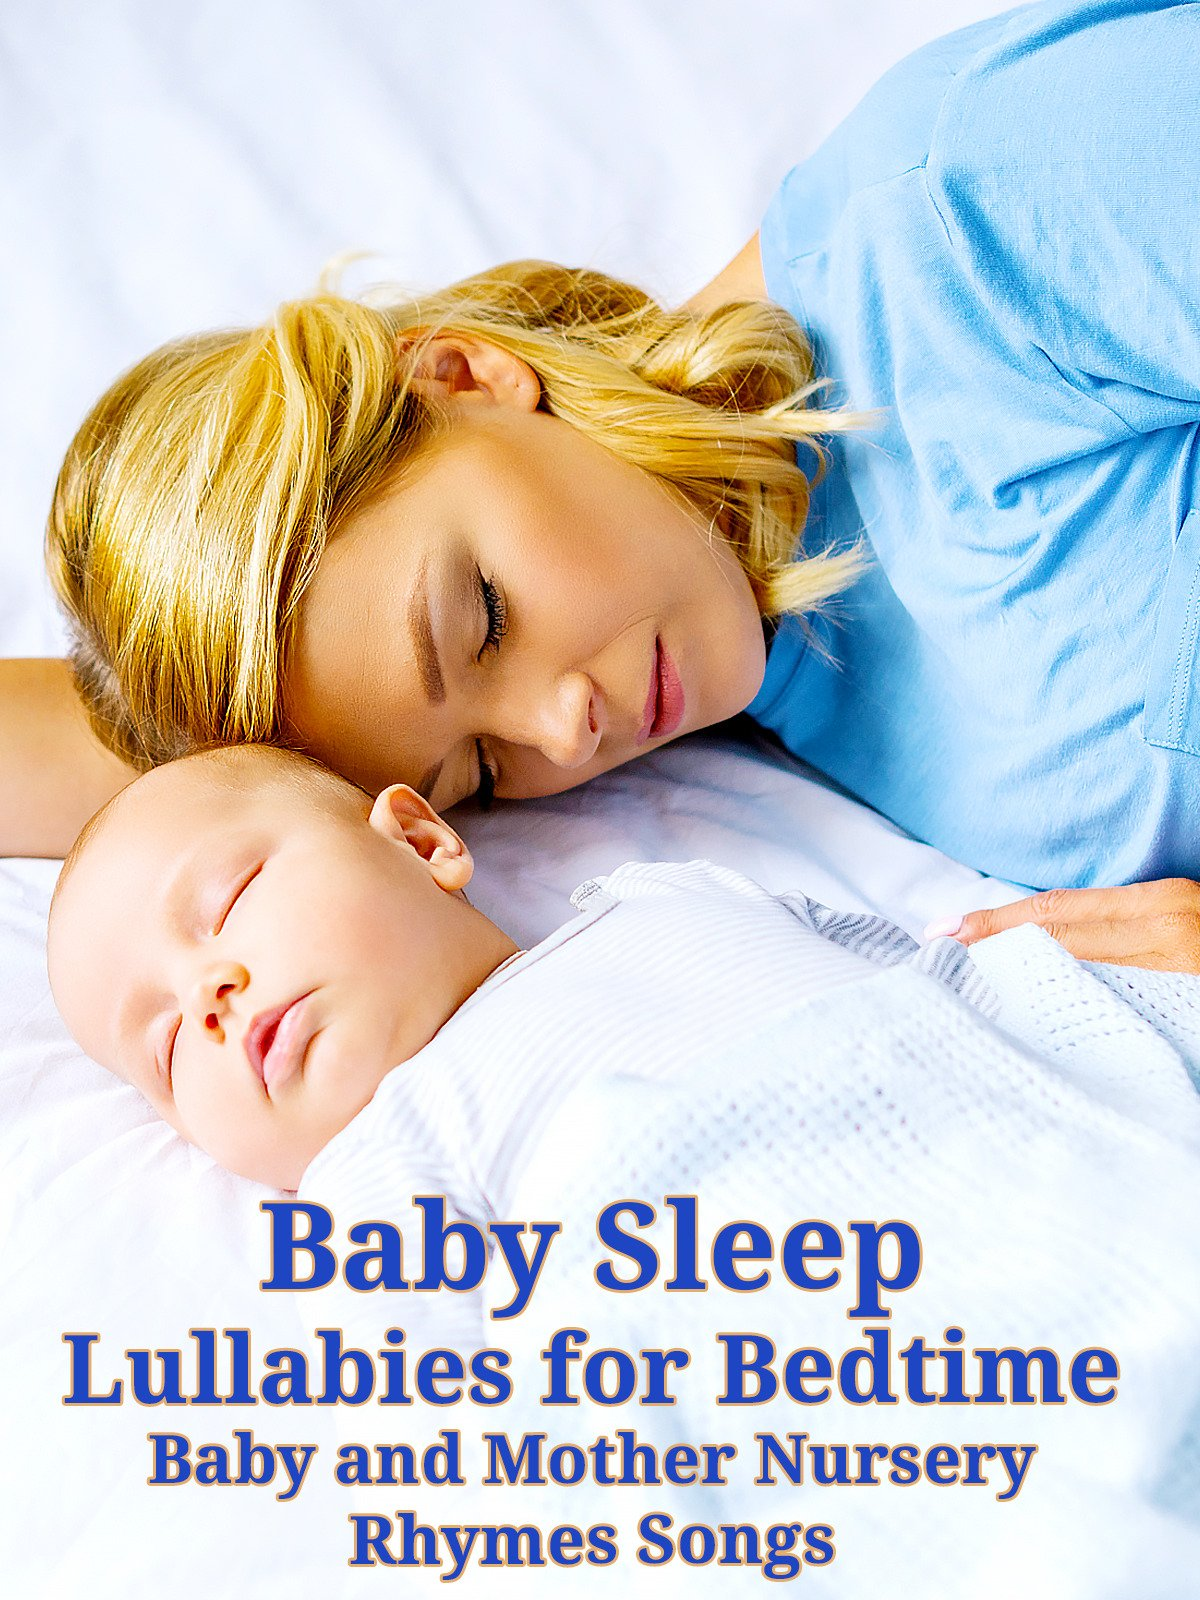 Baby Sleep Lullabies for Bedtime Baby and Mother Nursery Rhymes Songs